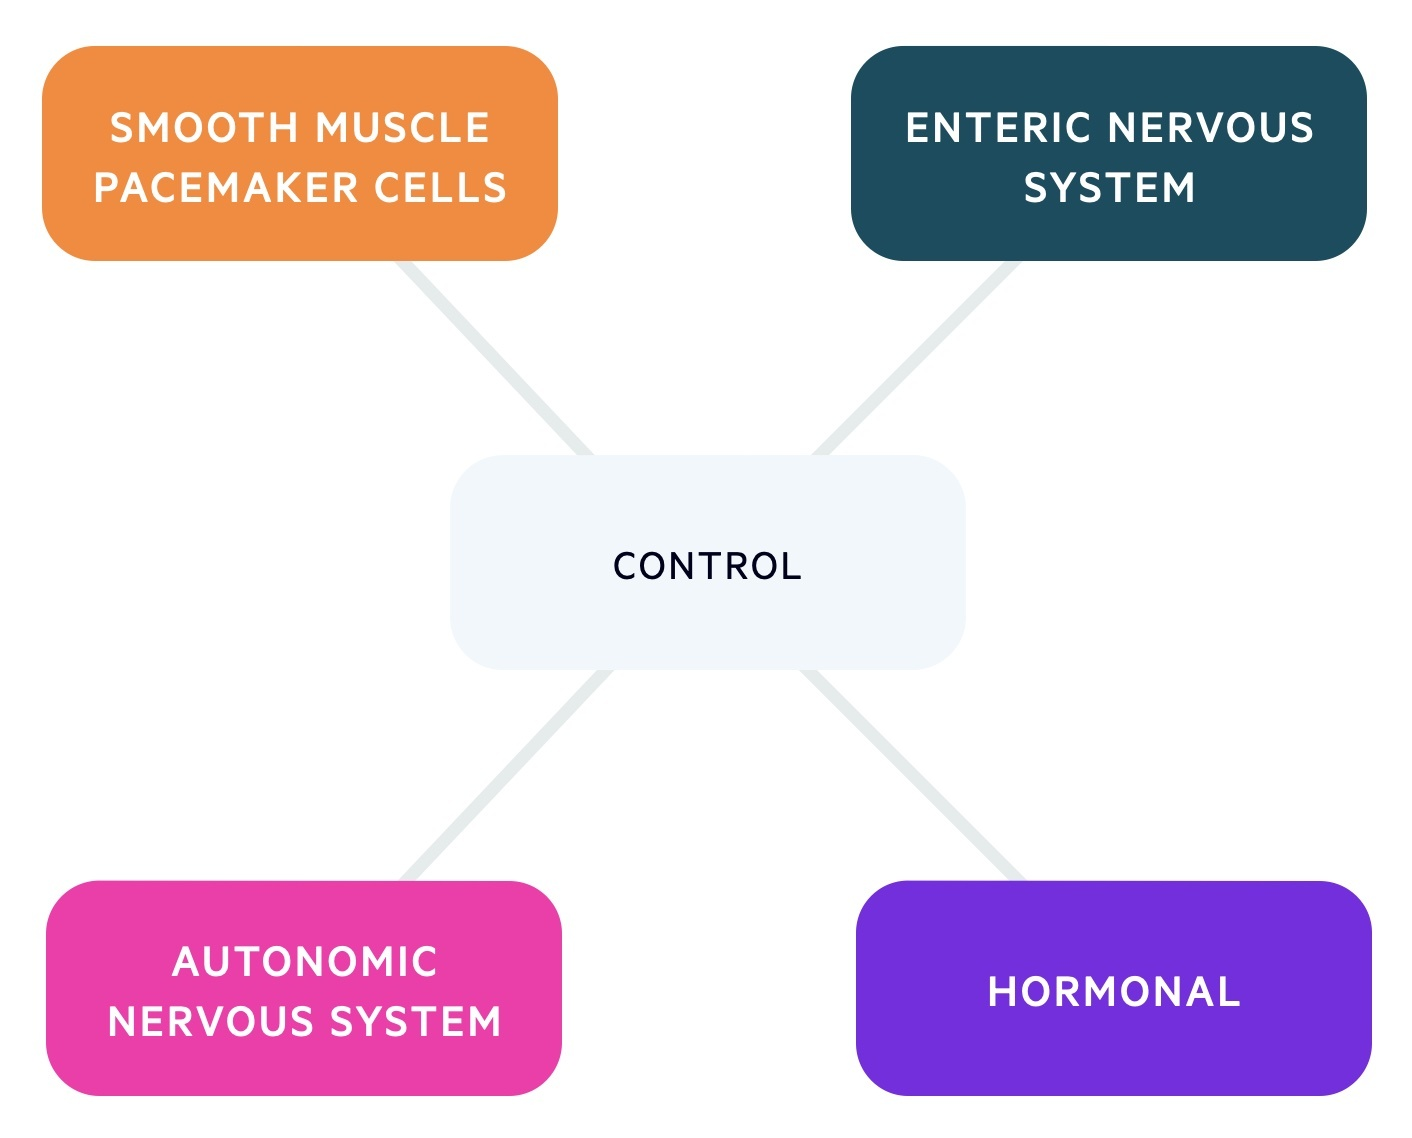 Control of the GI tract